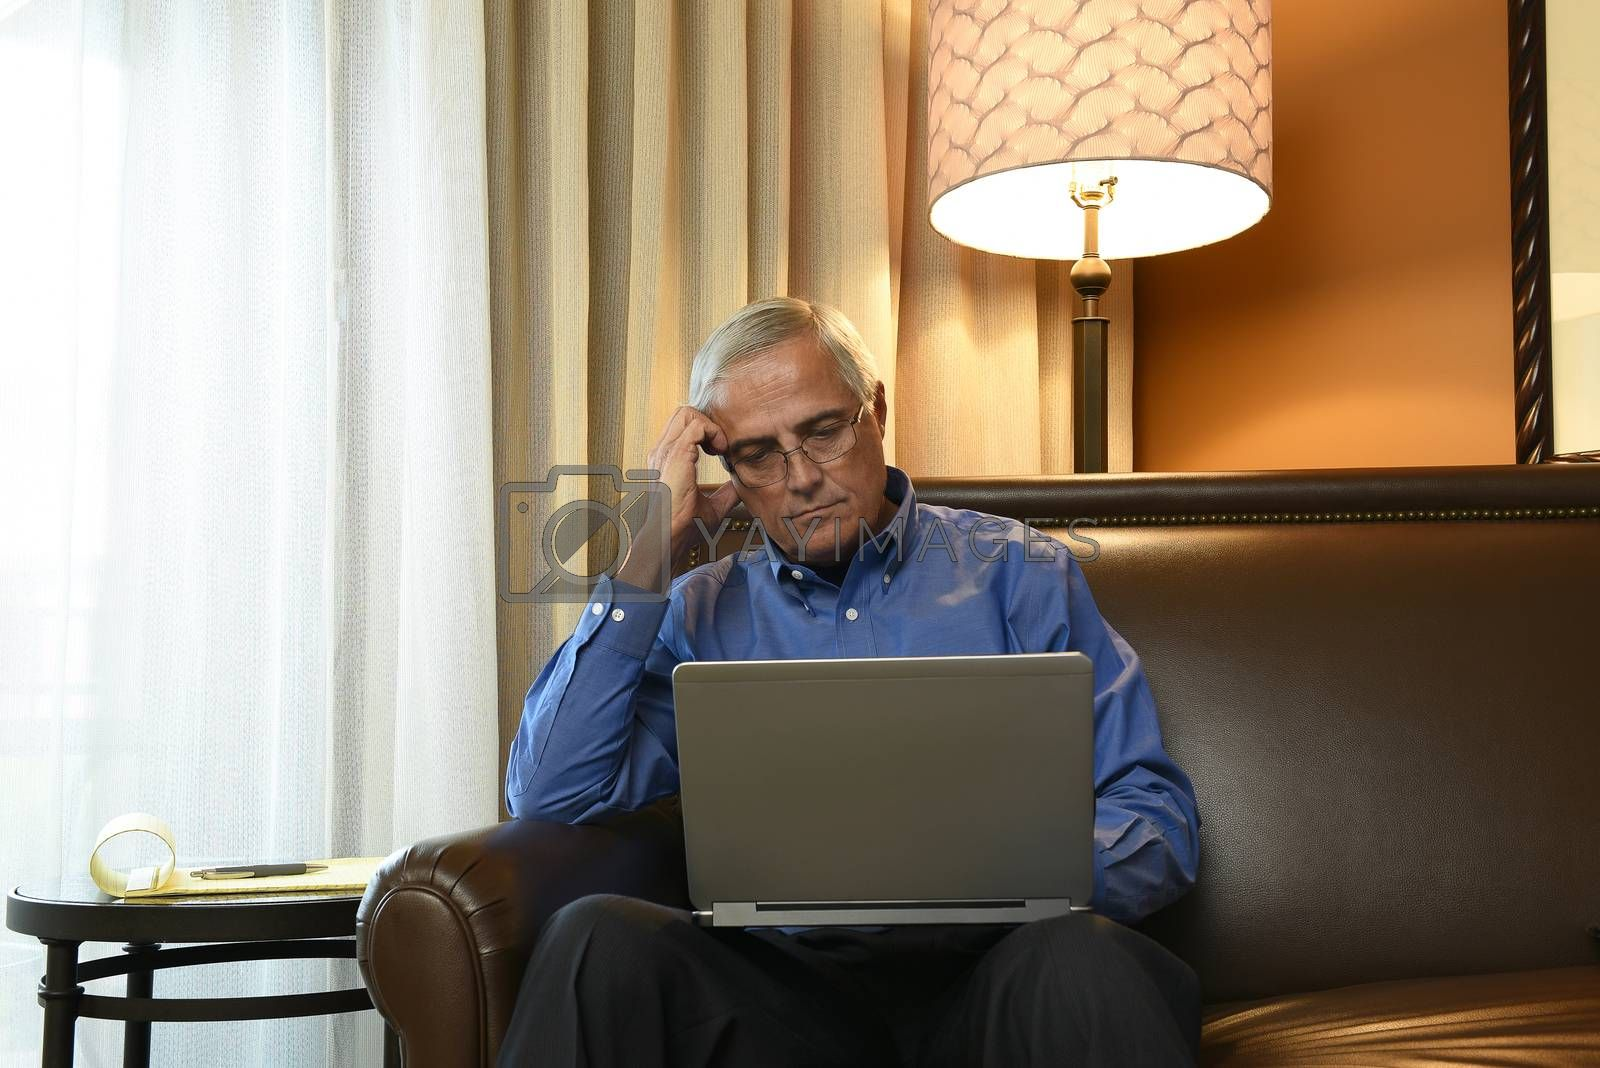 Business Travel Concept: Mature Businessman sitting in his hotel room working on his laptop computer.